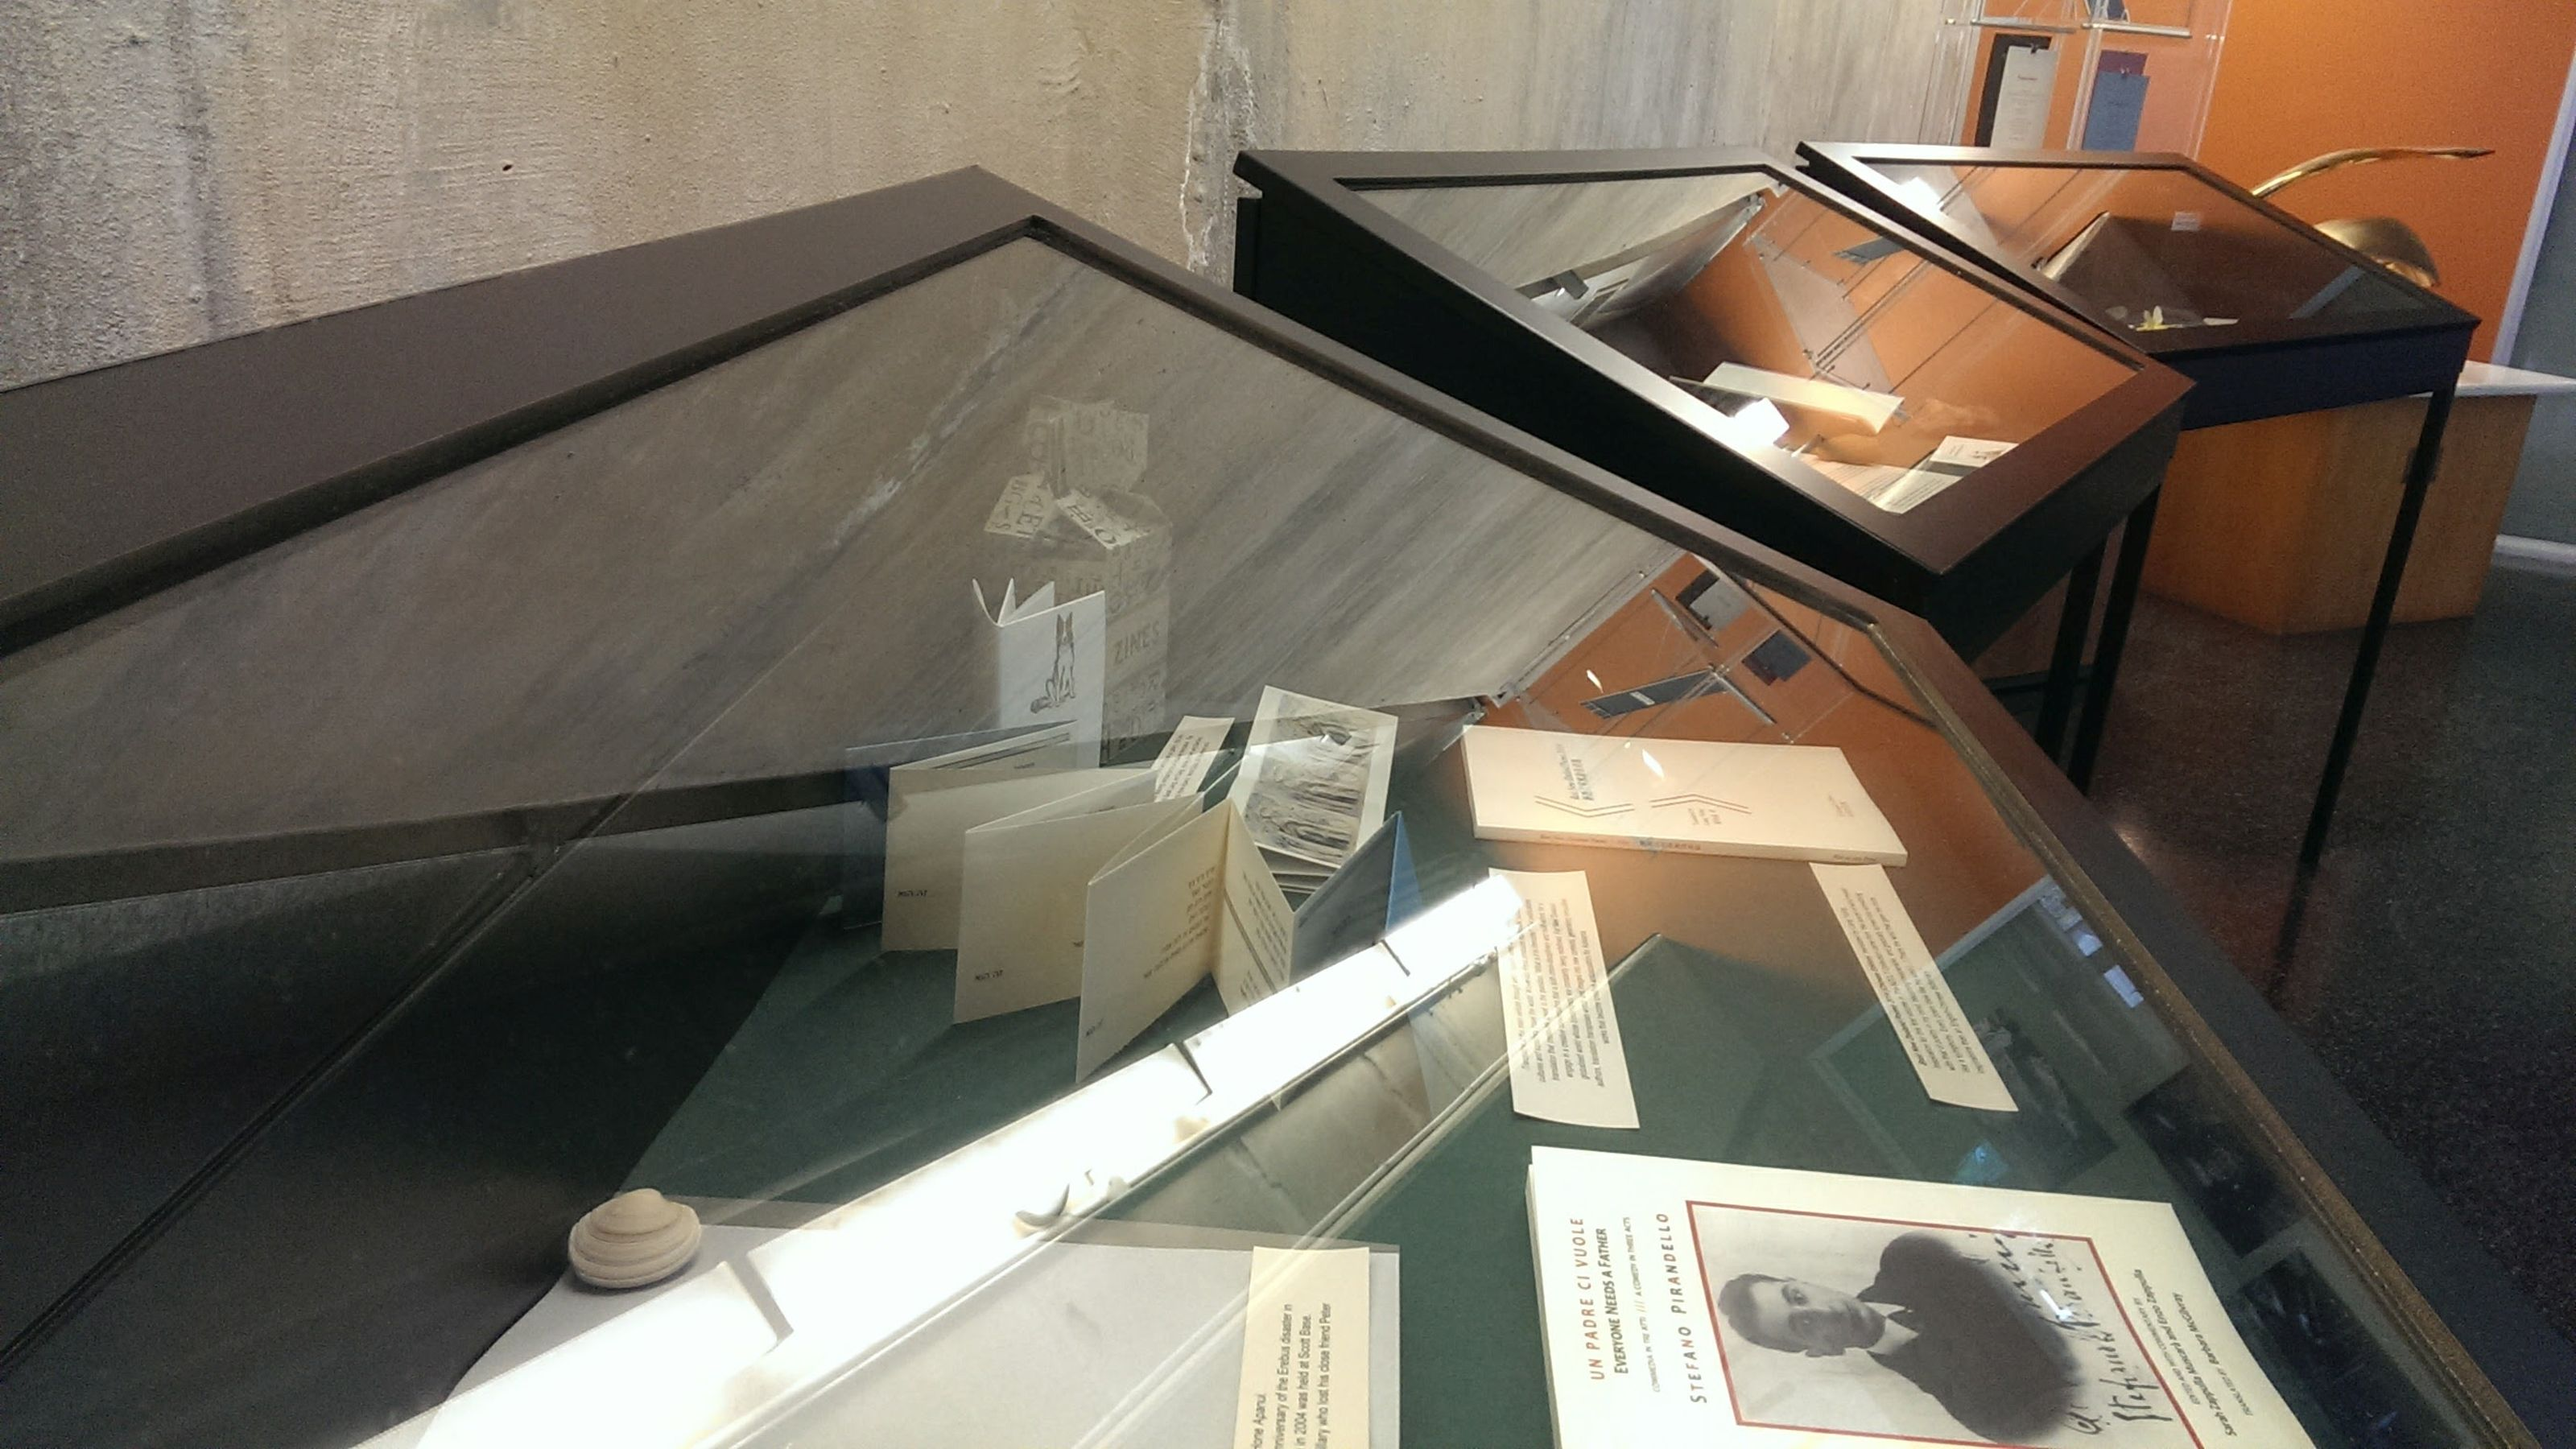 The innovative publications in translation part of the Borderlands exhibition.